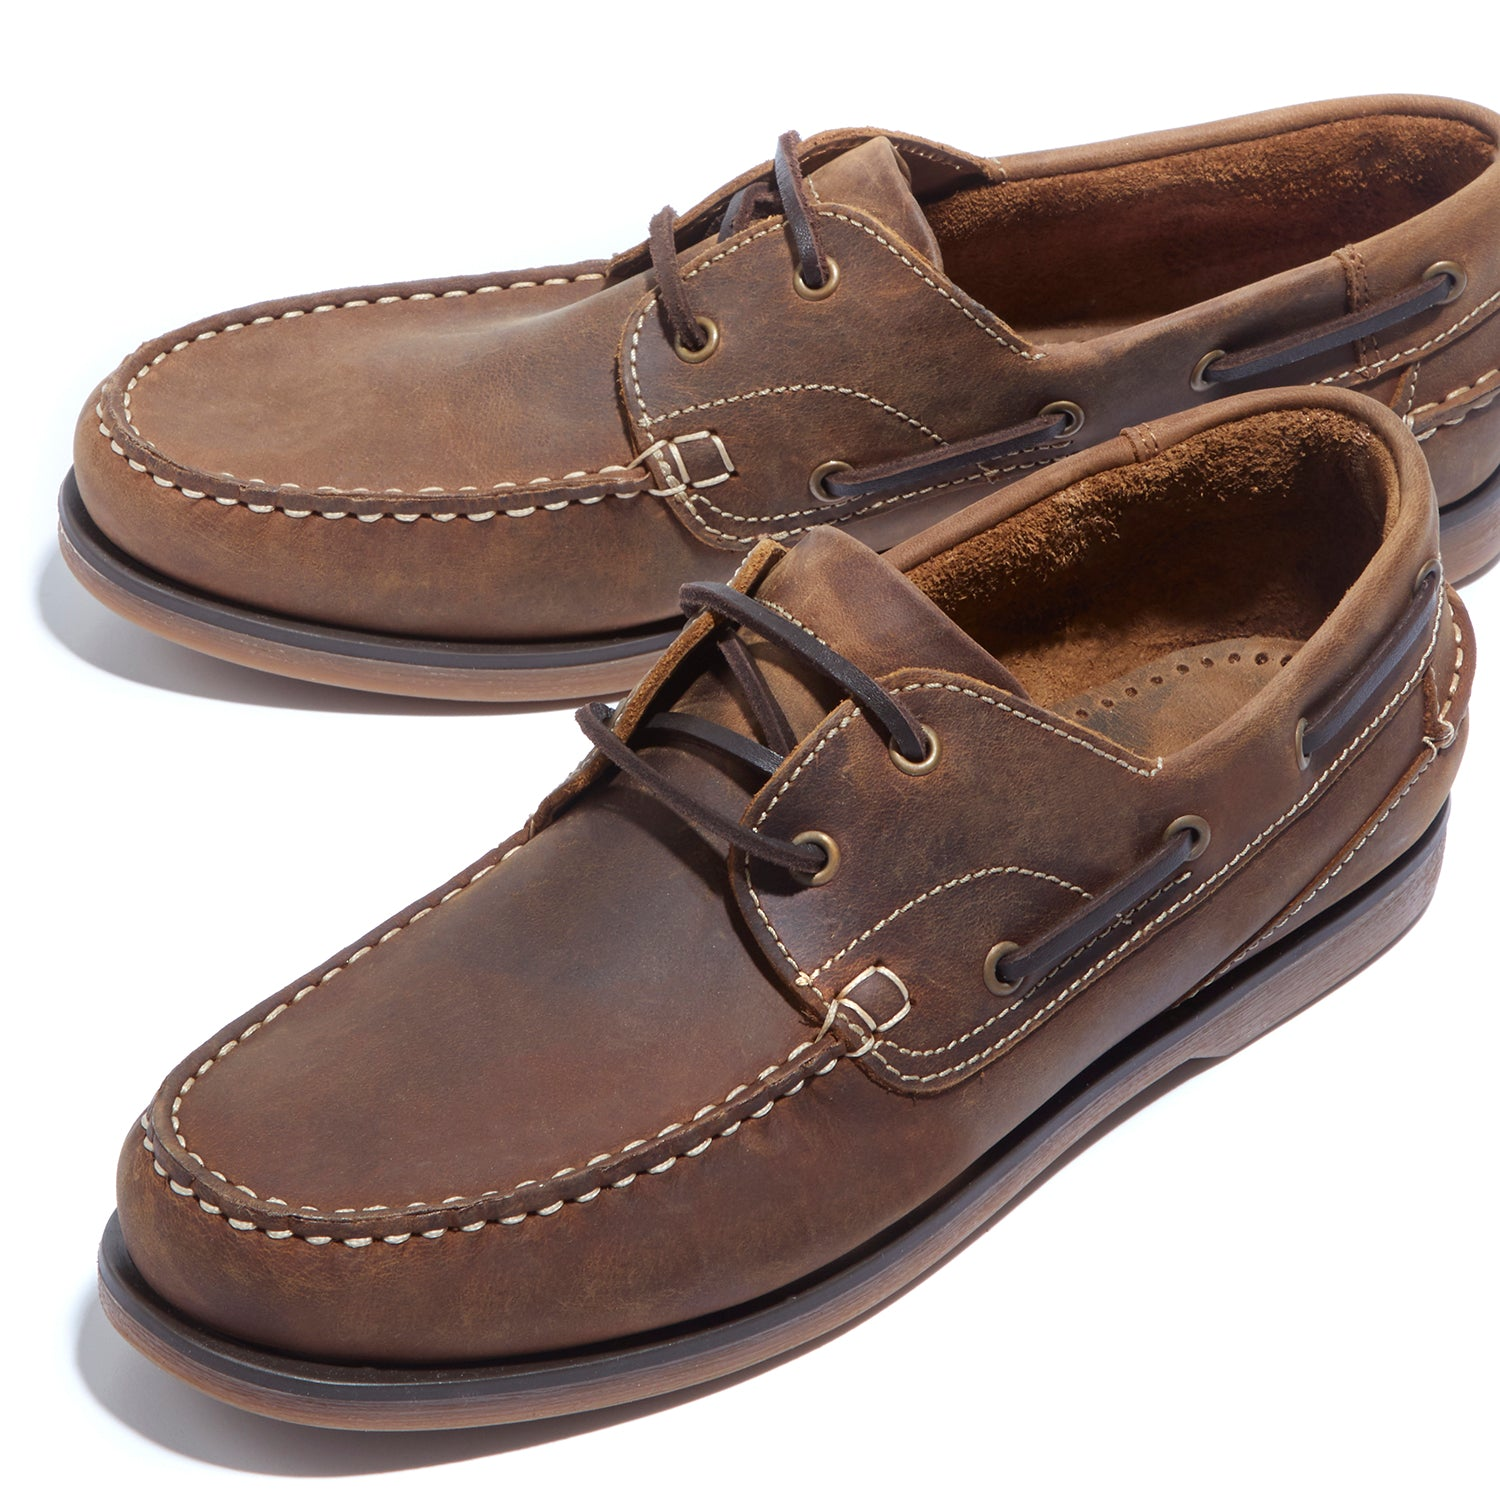 boat shoes from Jones Bootmaker